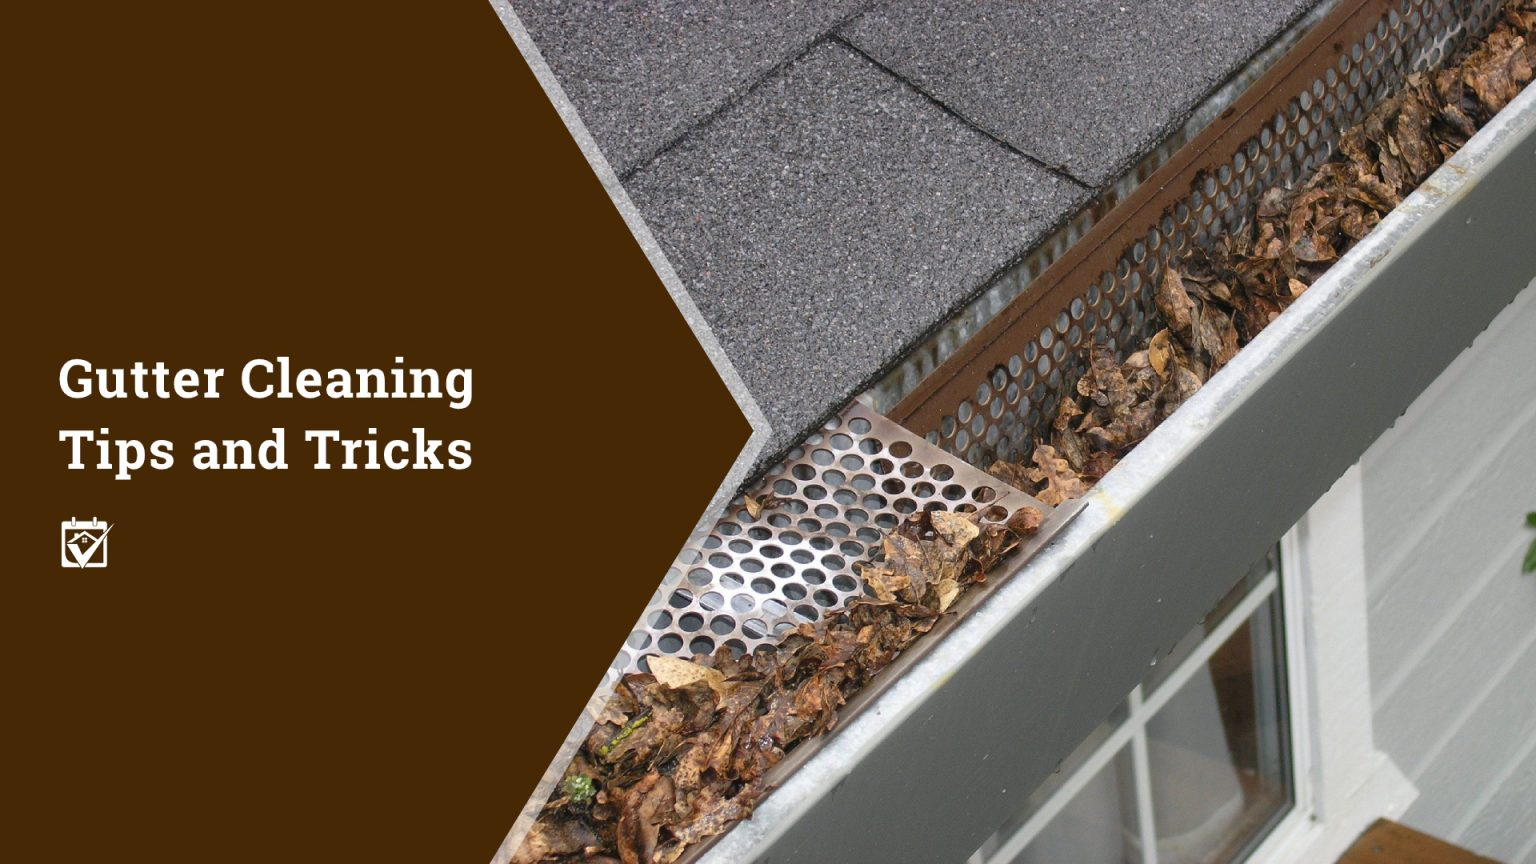 Gutter Cleaning Tips & Tricks